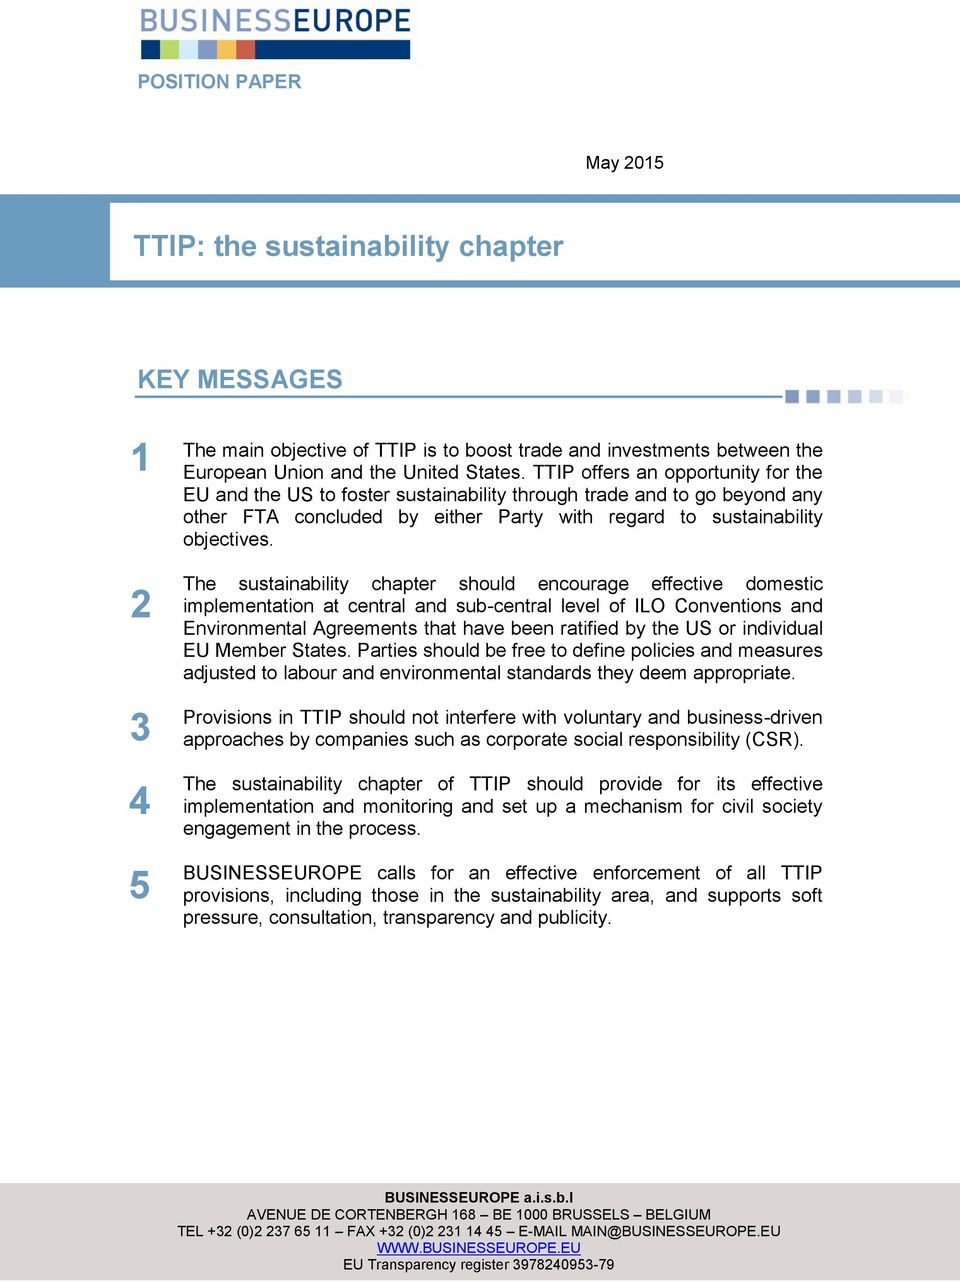 TTIP offers an opportunity for the EU and the US to foster sustainability through trade and to go beyond any other FTA concluded by either Party with regard to sustainability objectives.